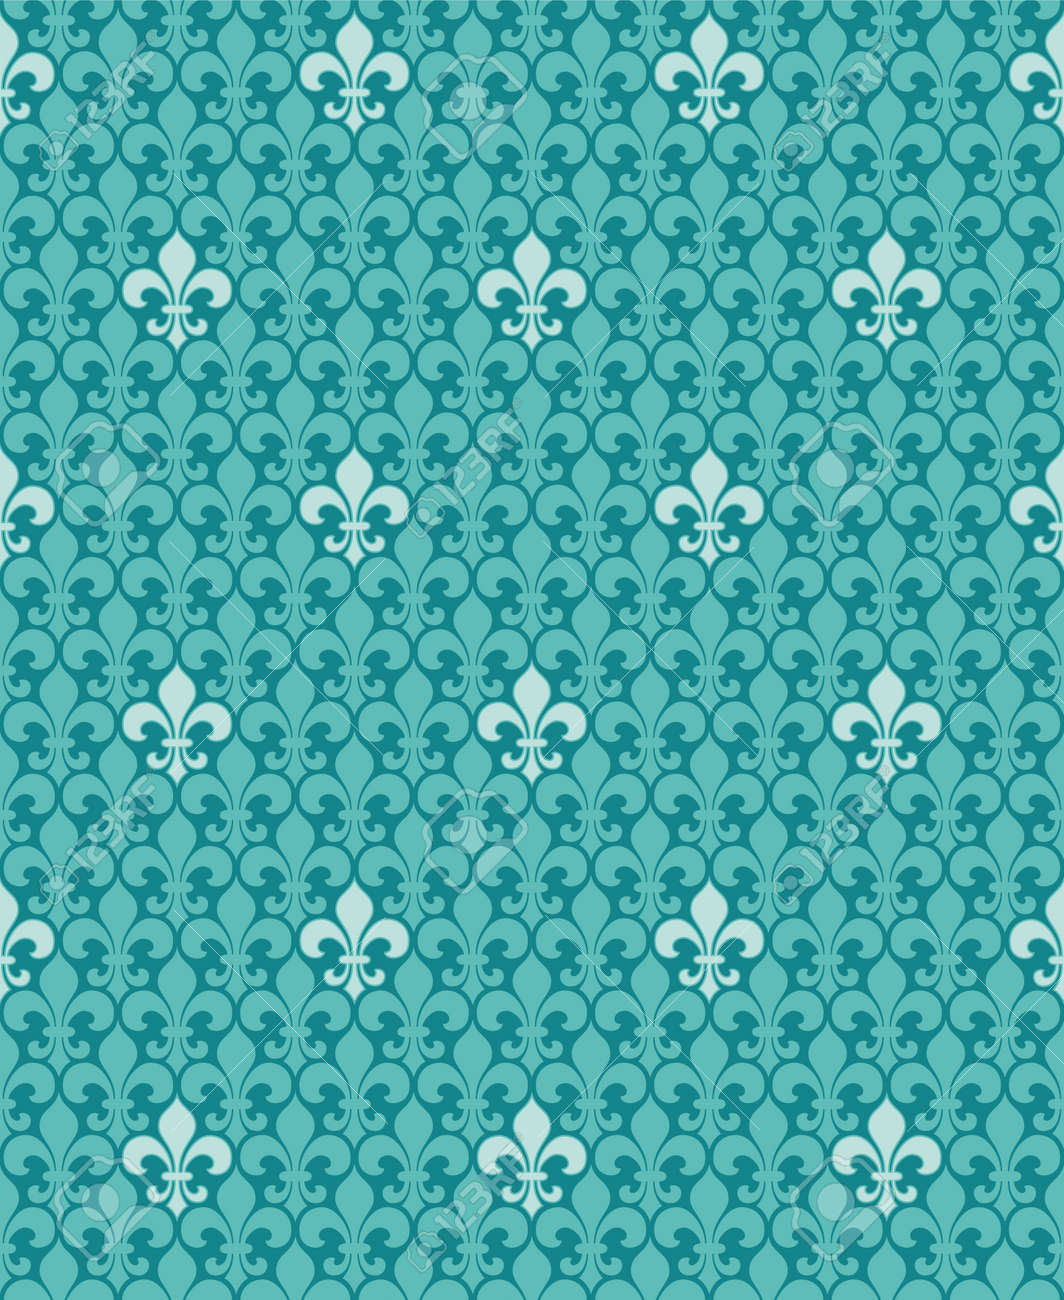 Vintage Wallpaper Light Ornaments On Turquoise Blue Background